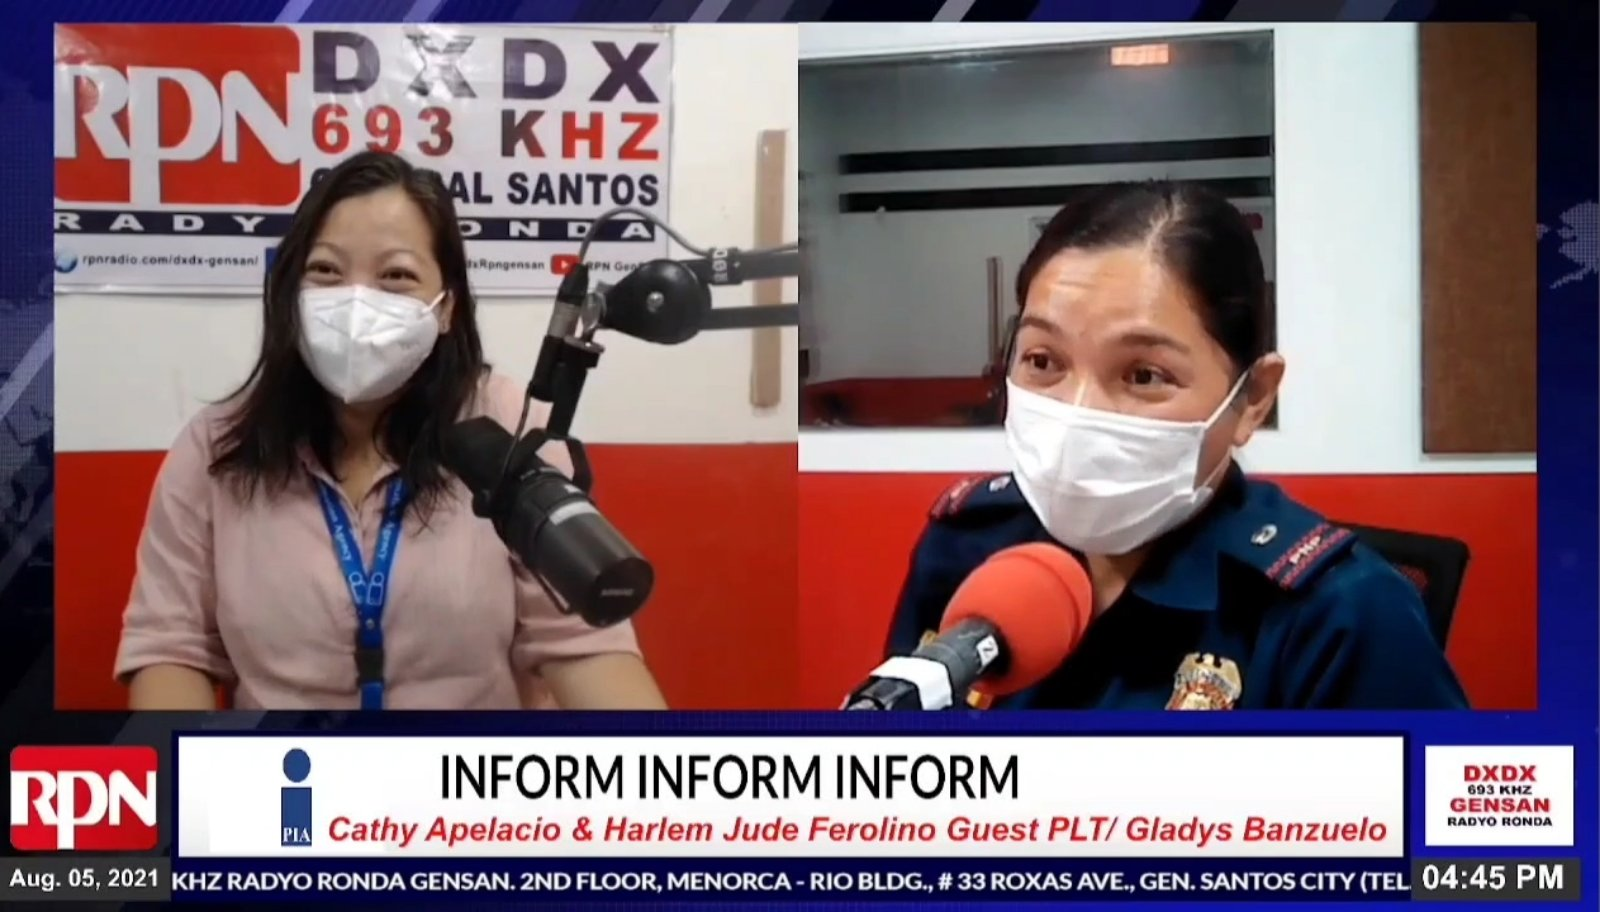 PRO XII reminds students and teachers on Anti-Bullying and Child Abuse